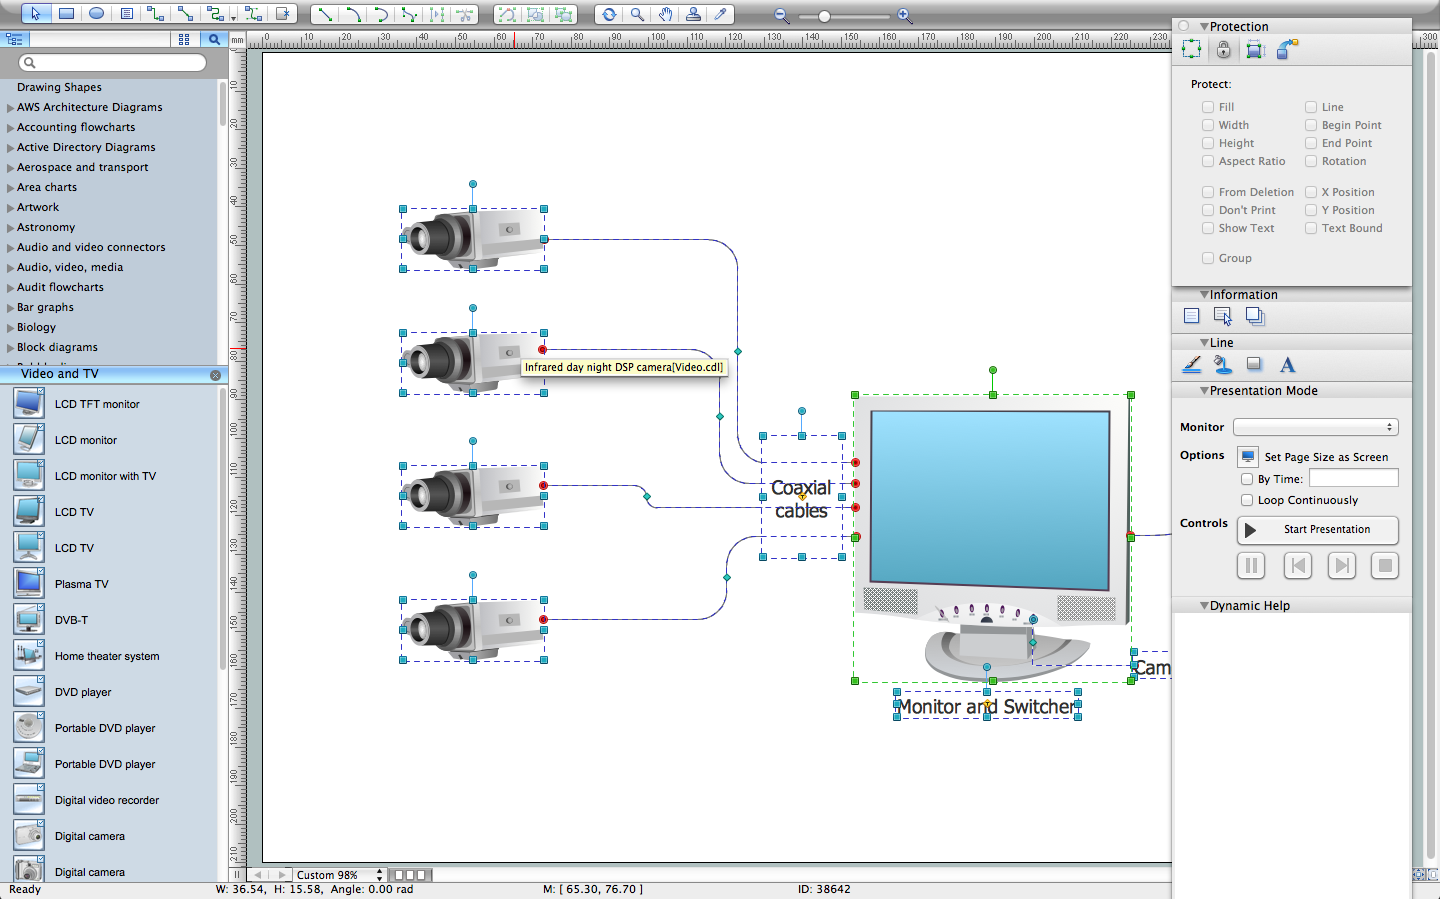 cctv network example   how to create cctv network diagram   cctv    cctv network diagram software